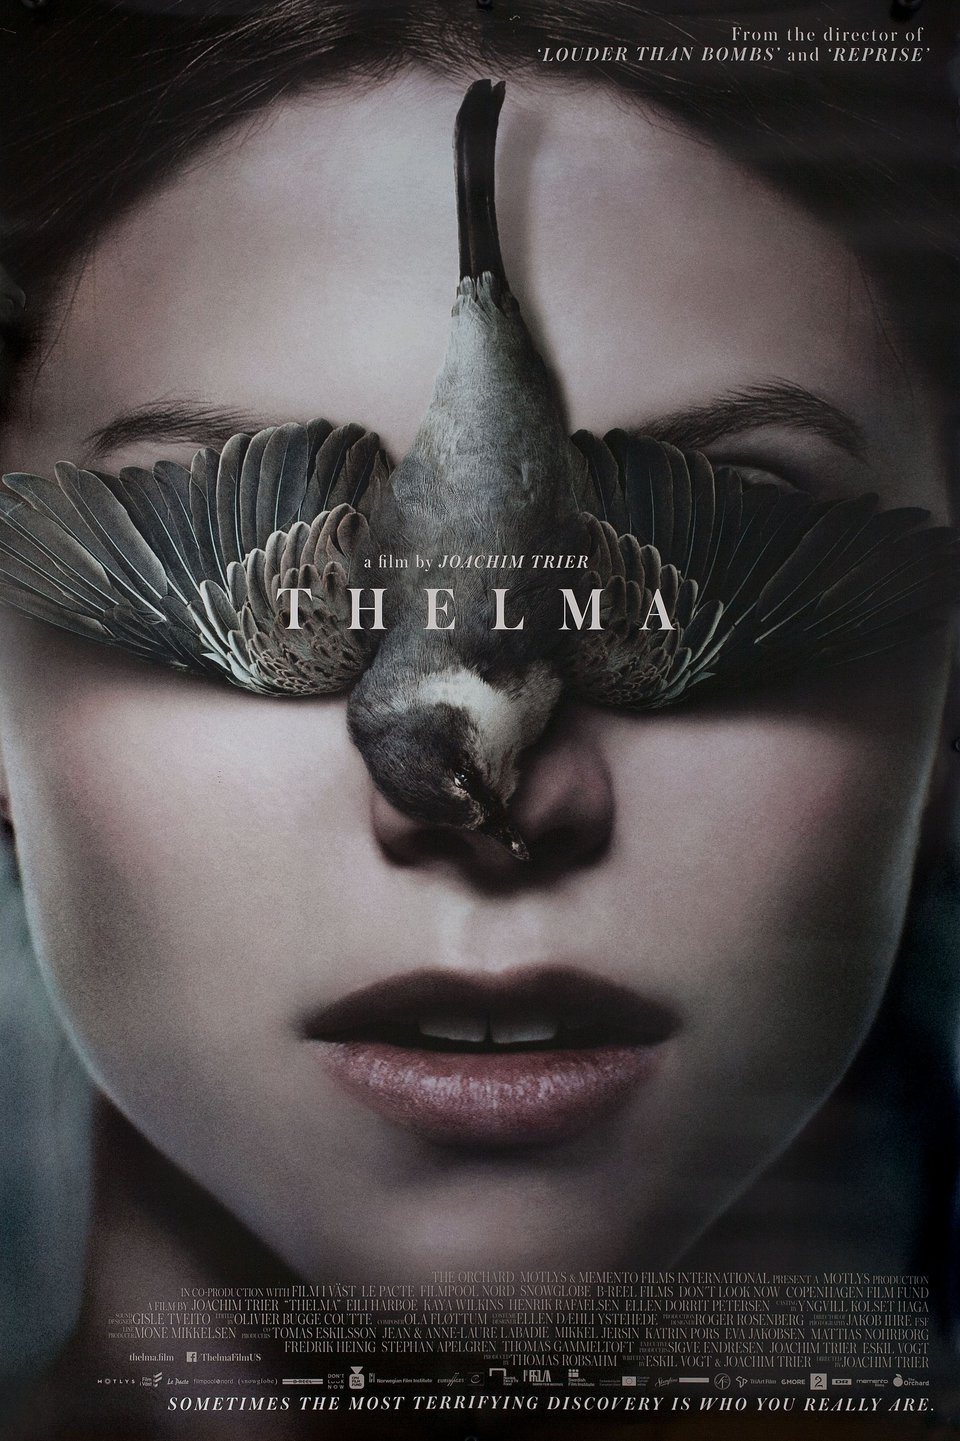 Thelma 2017 U.S. One Sheet Poster